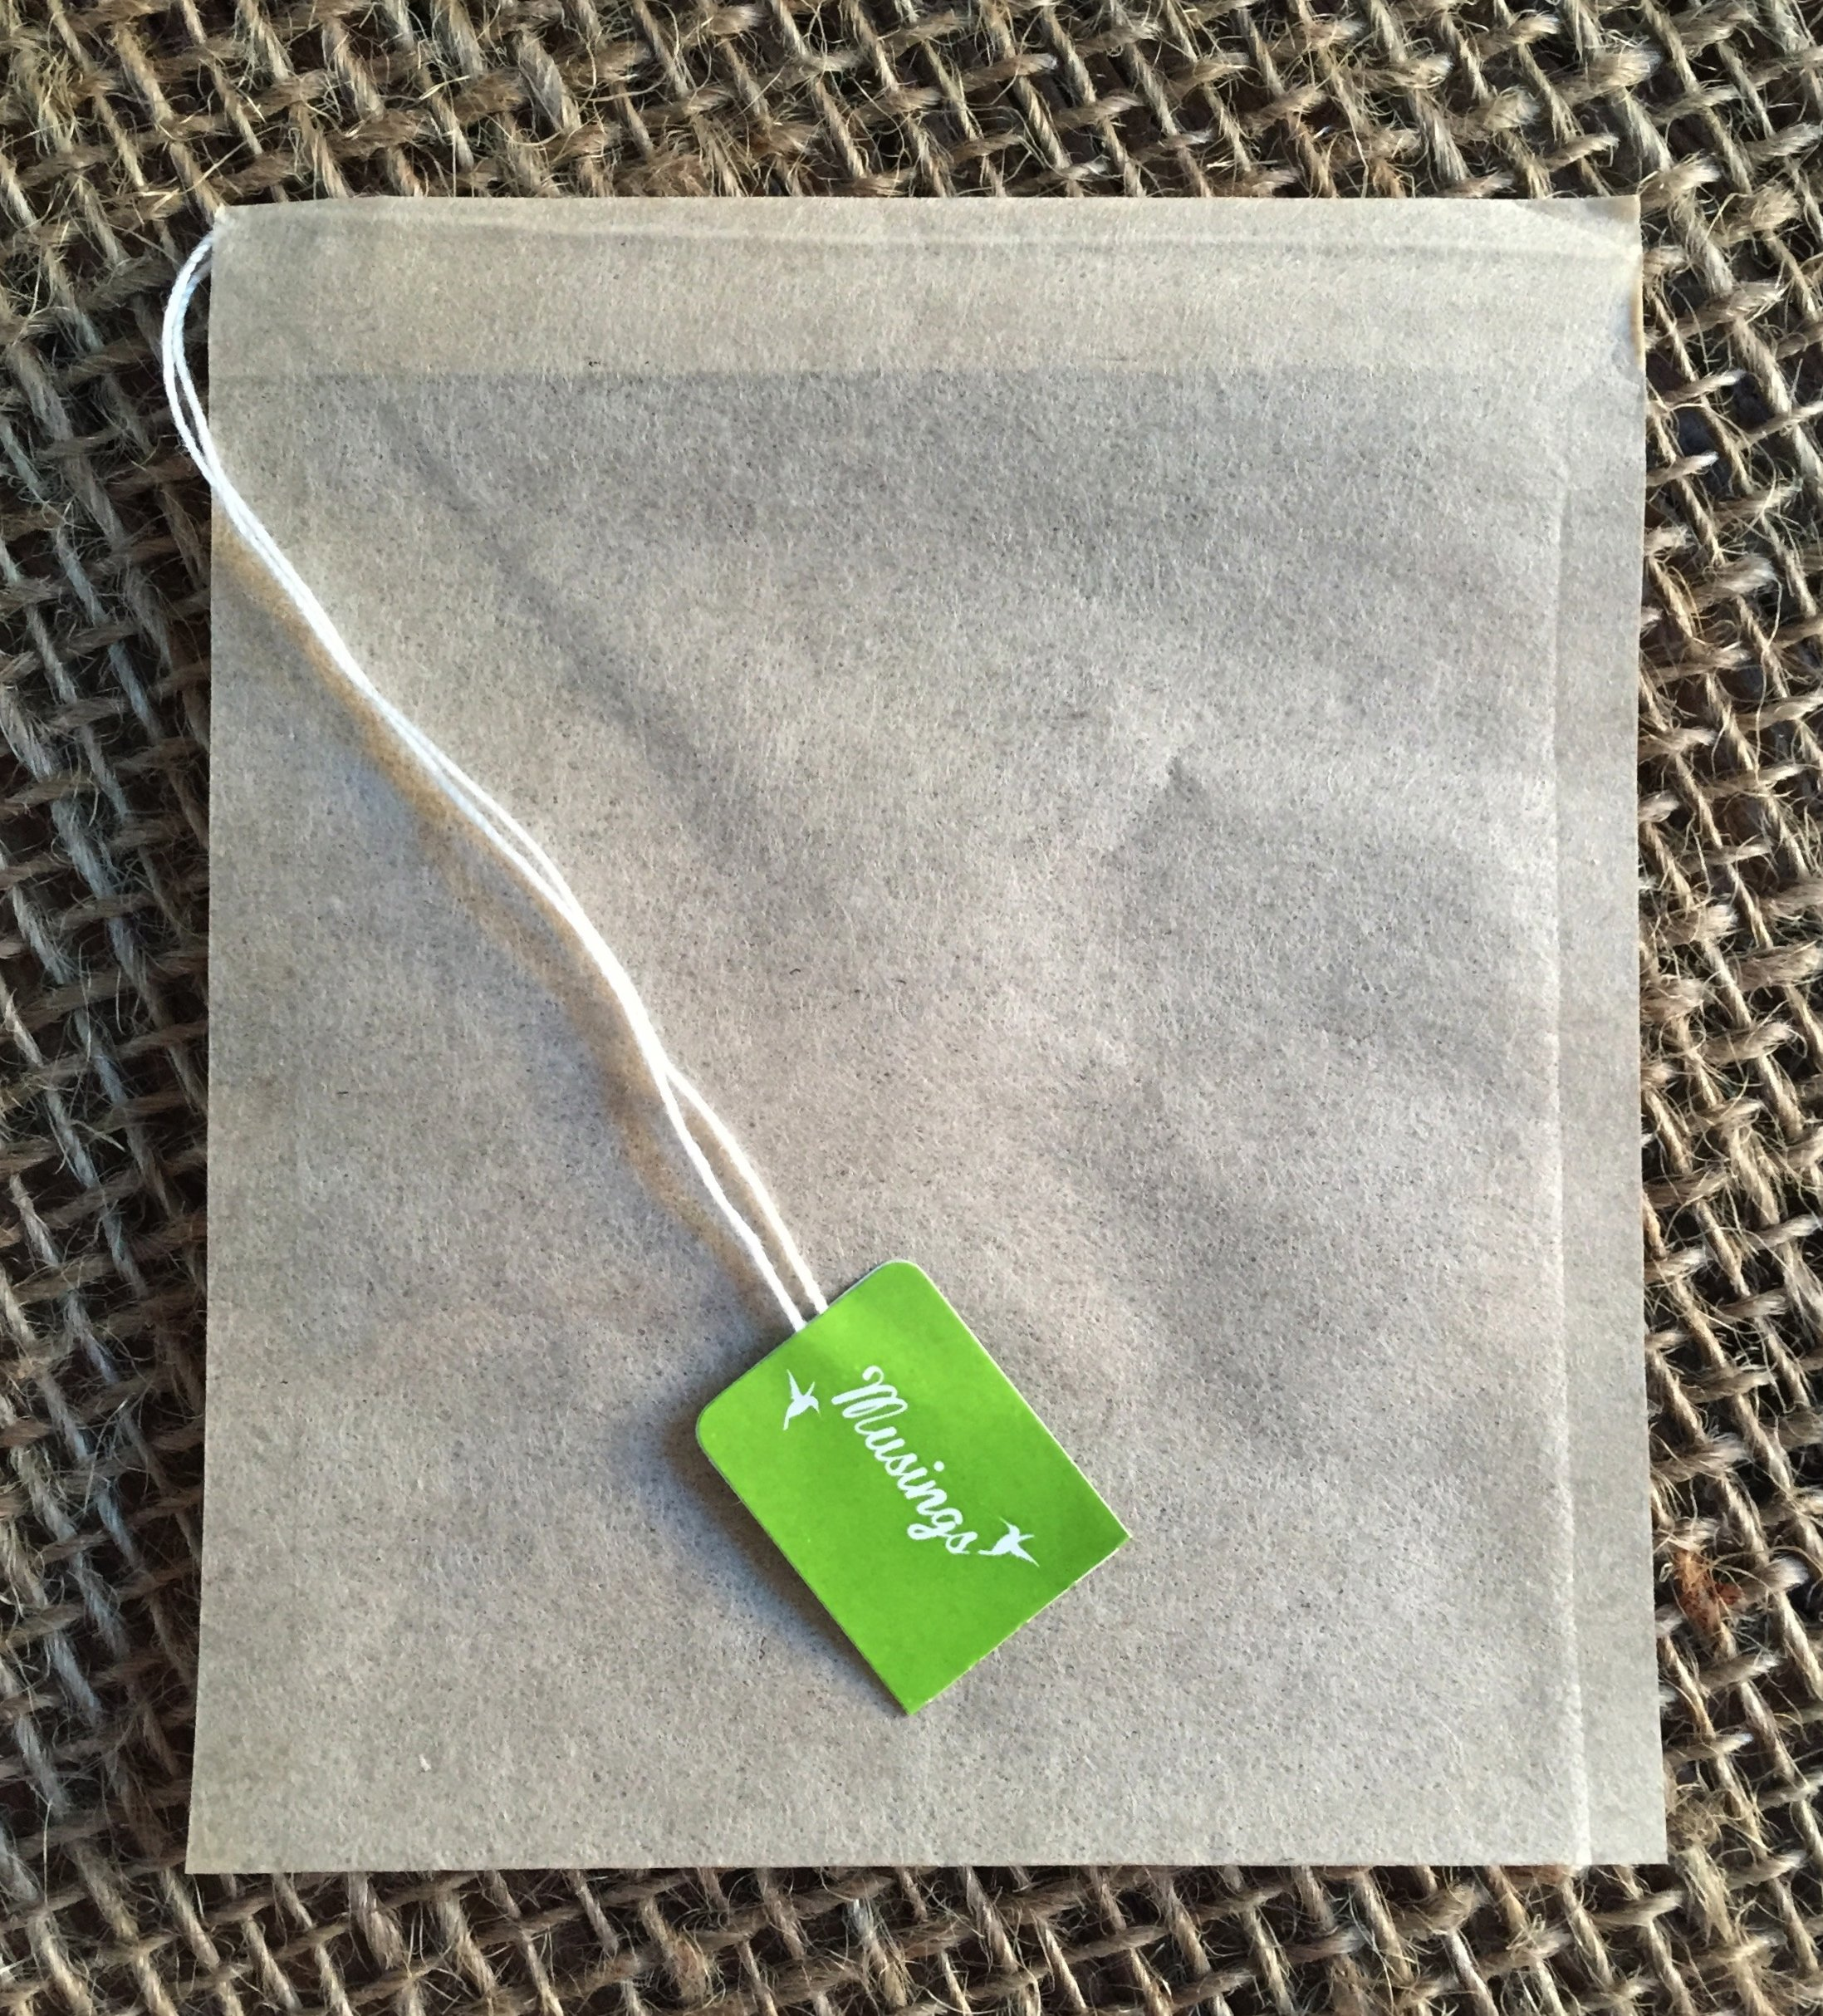 Premium Drawstring Tea Bags For Loose Leaf, Disposable Filters, Non GMO, Strong, No Mess Tag, All Natural Infuser, Compostable, Unbleached Manilla Hemp Paper by Musings Tea (Image #2)